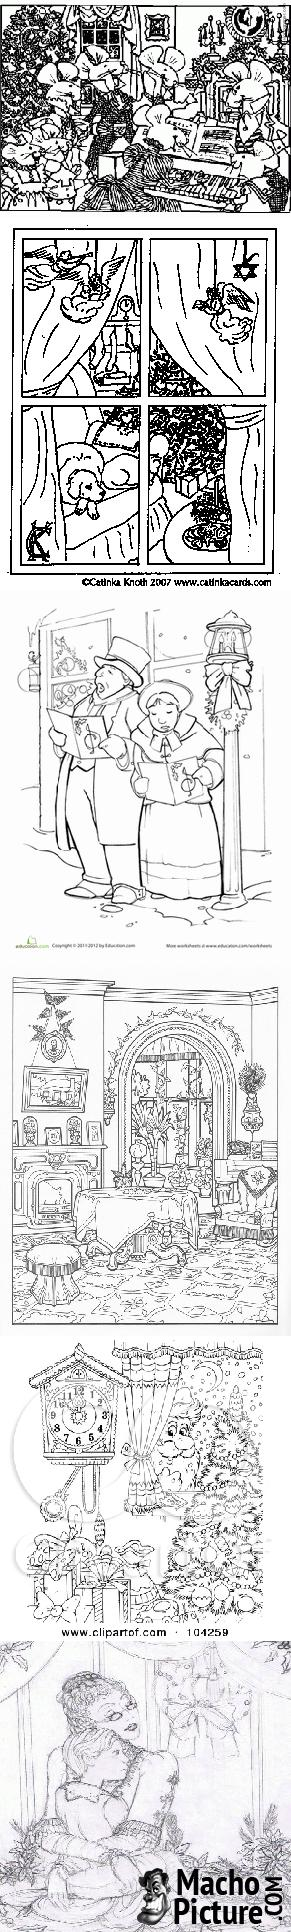 Victorian christmas coloring pages - 7 PHOTO! | Victorian Christmas ...